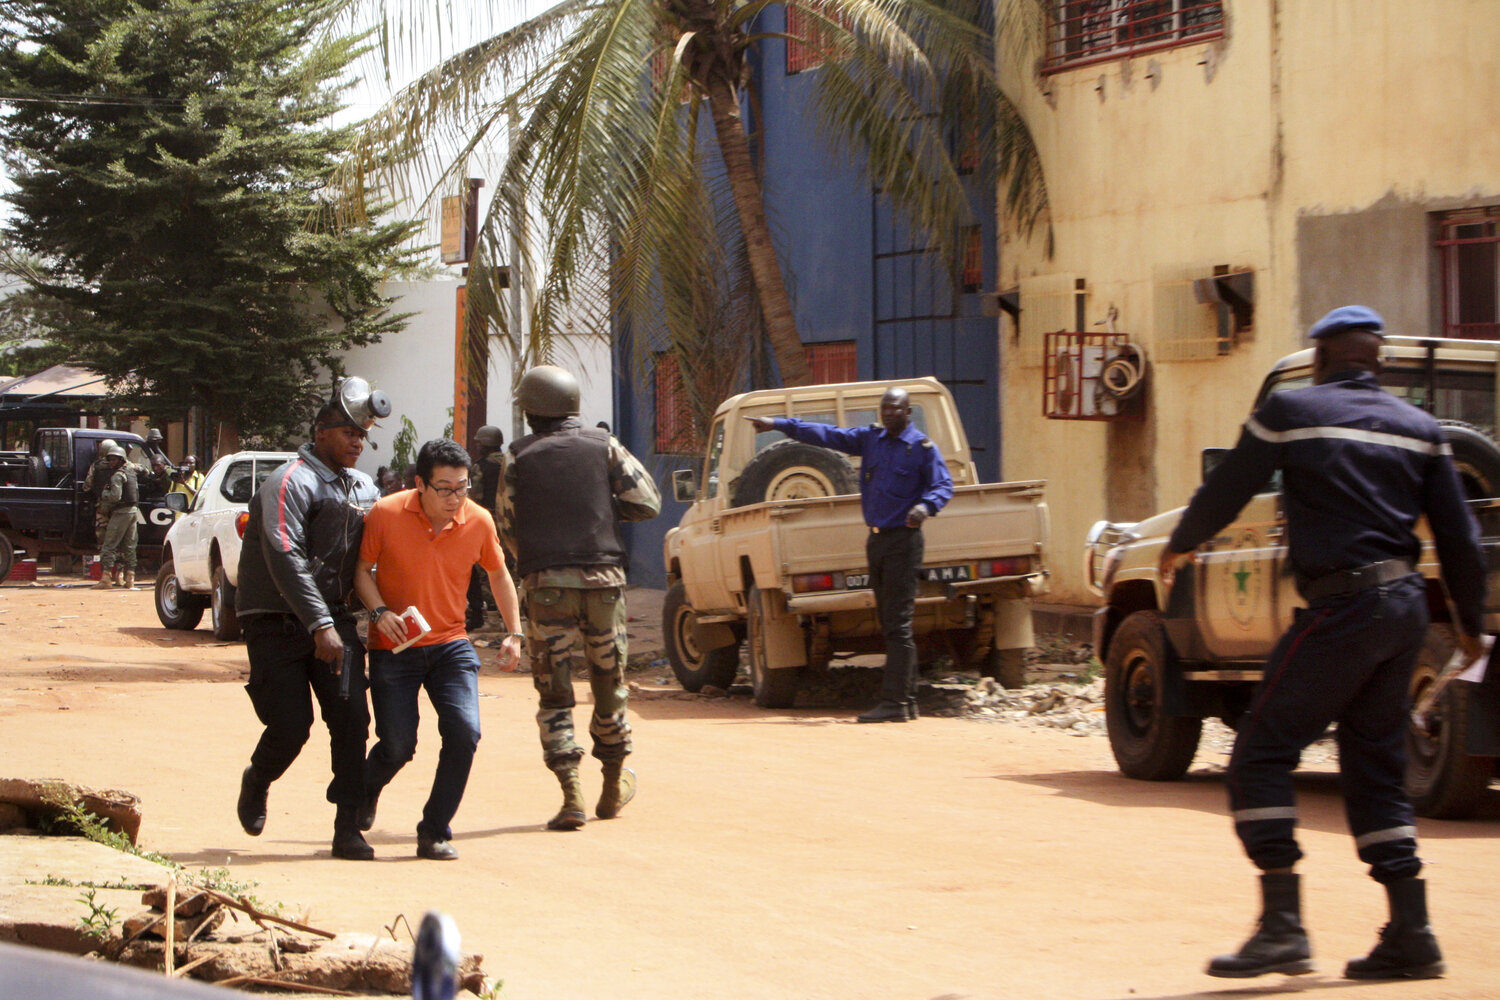 Malian troops assist a hostage to safety near the Radisson Blu hotel in Bamako, Mali, on Friday. Gunmen went on a shooting rampage at the hotel, seizing 170 guests and staff. (Harouna Traore/AP)